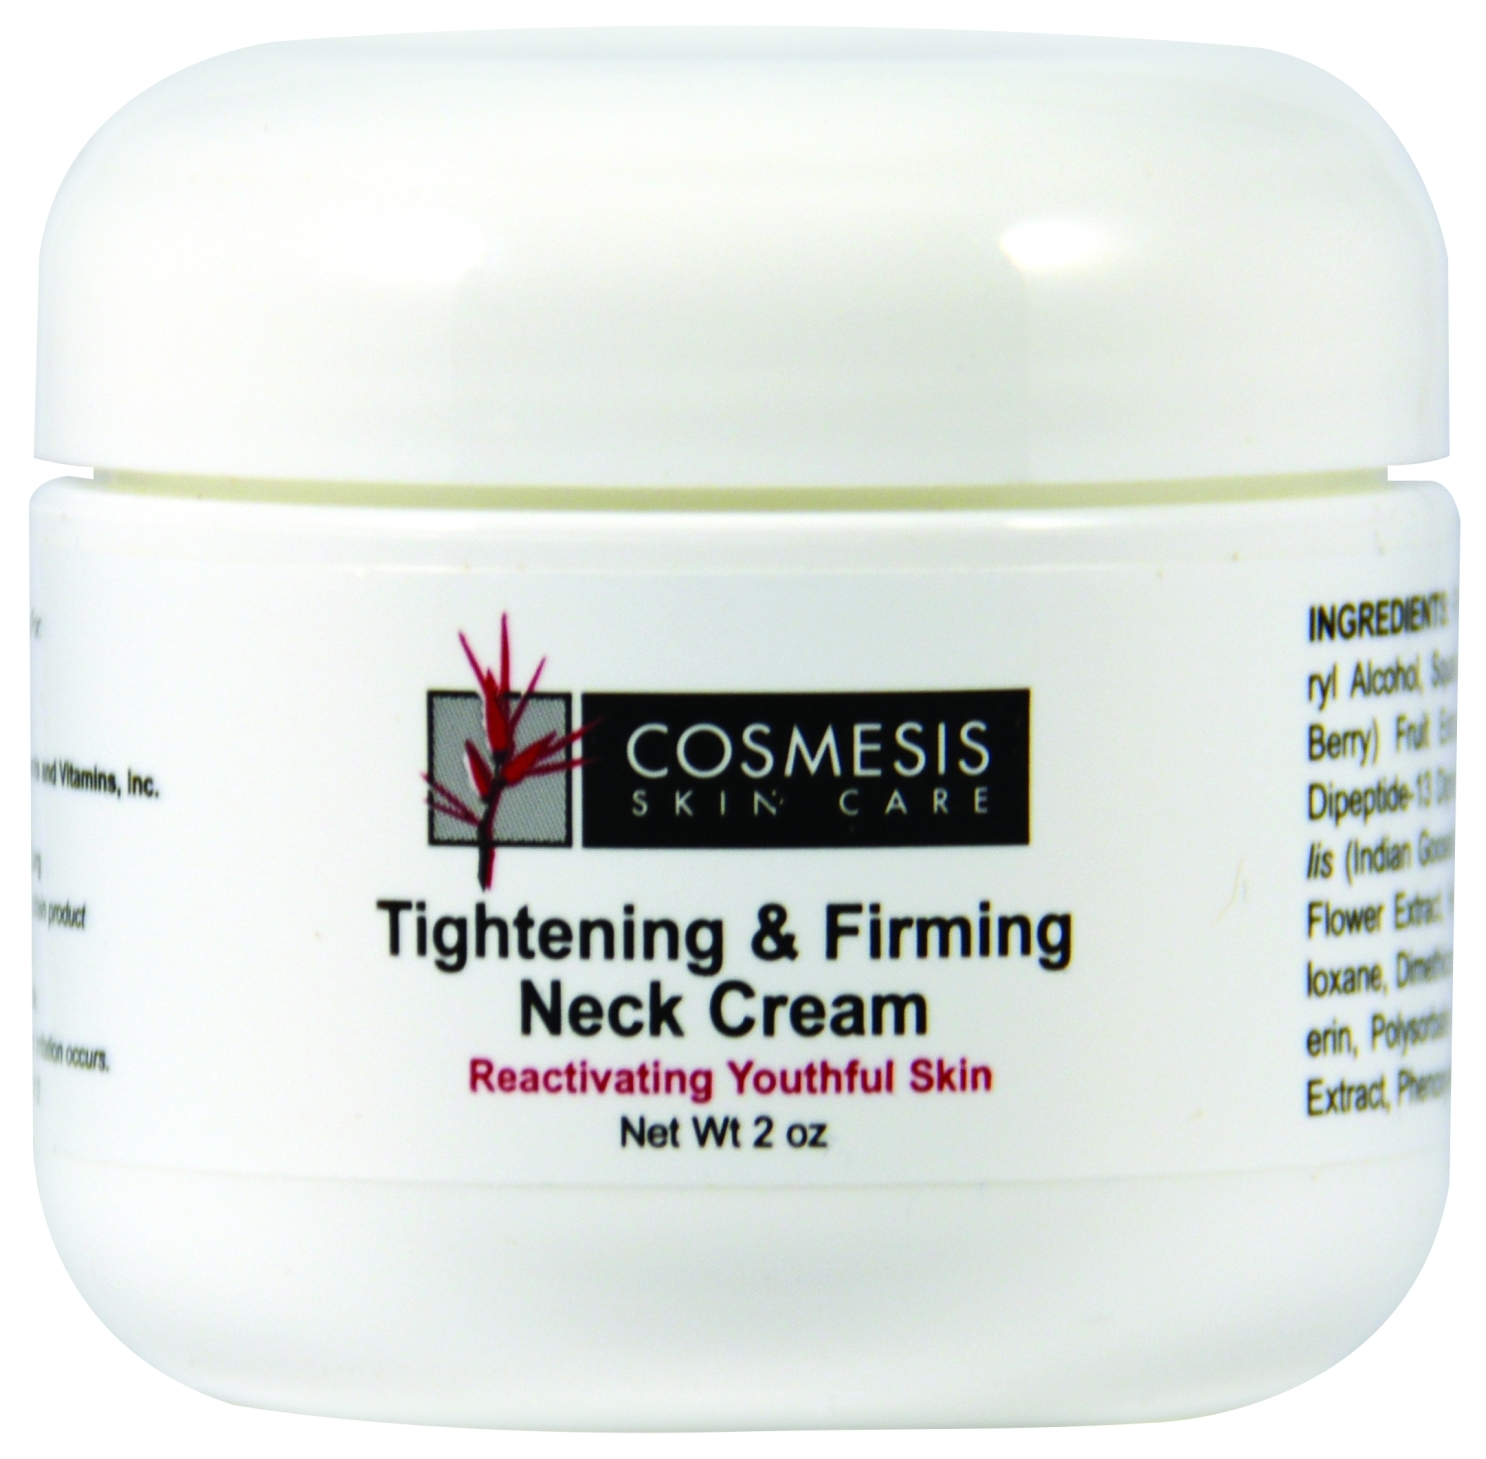 Tightening & Firming Neck Cream 2 oz by Life Extension